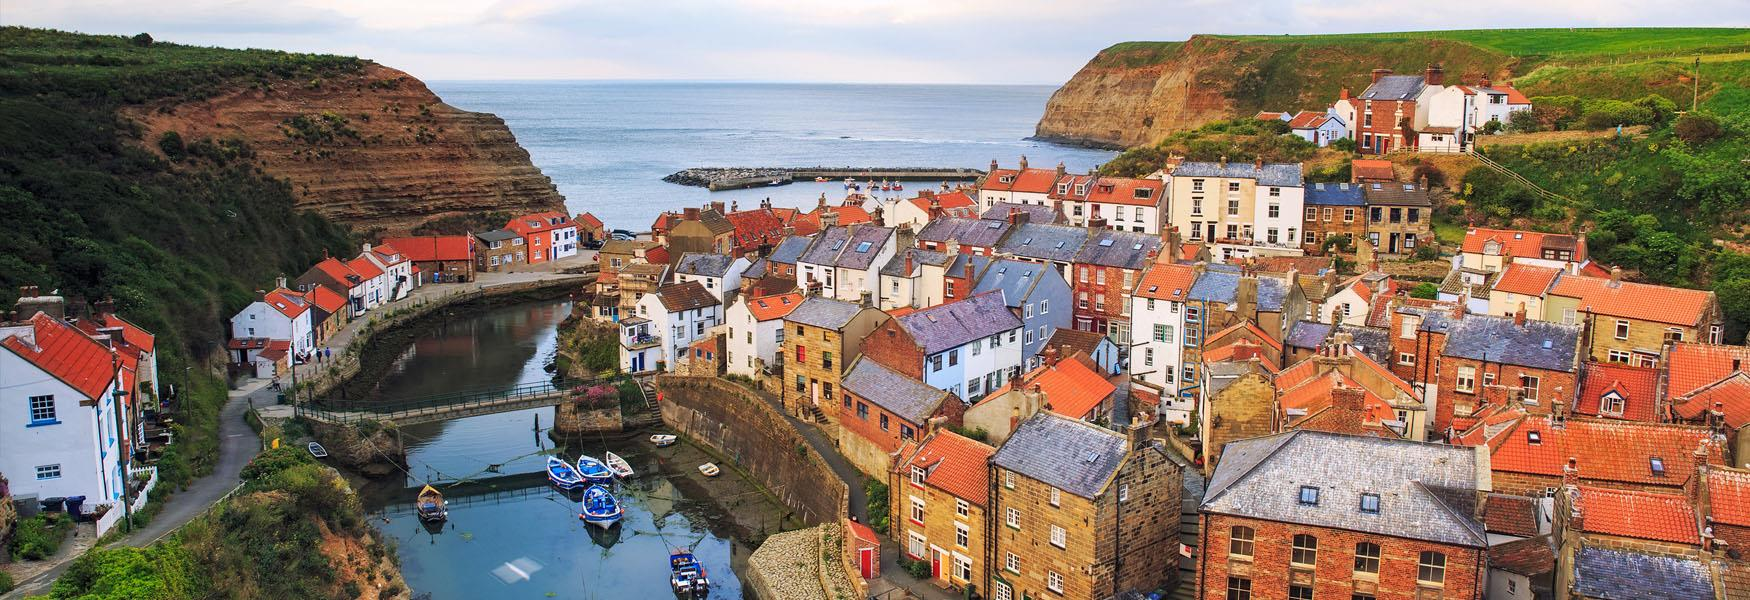 Staithes Scarborough